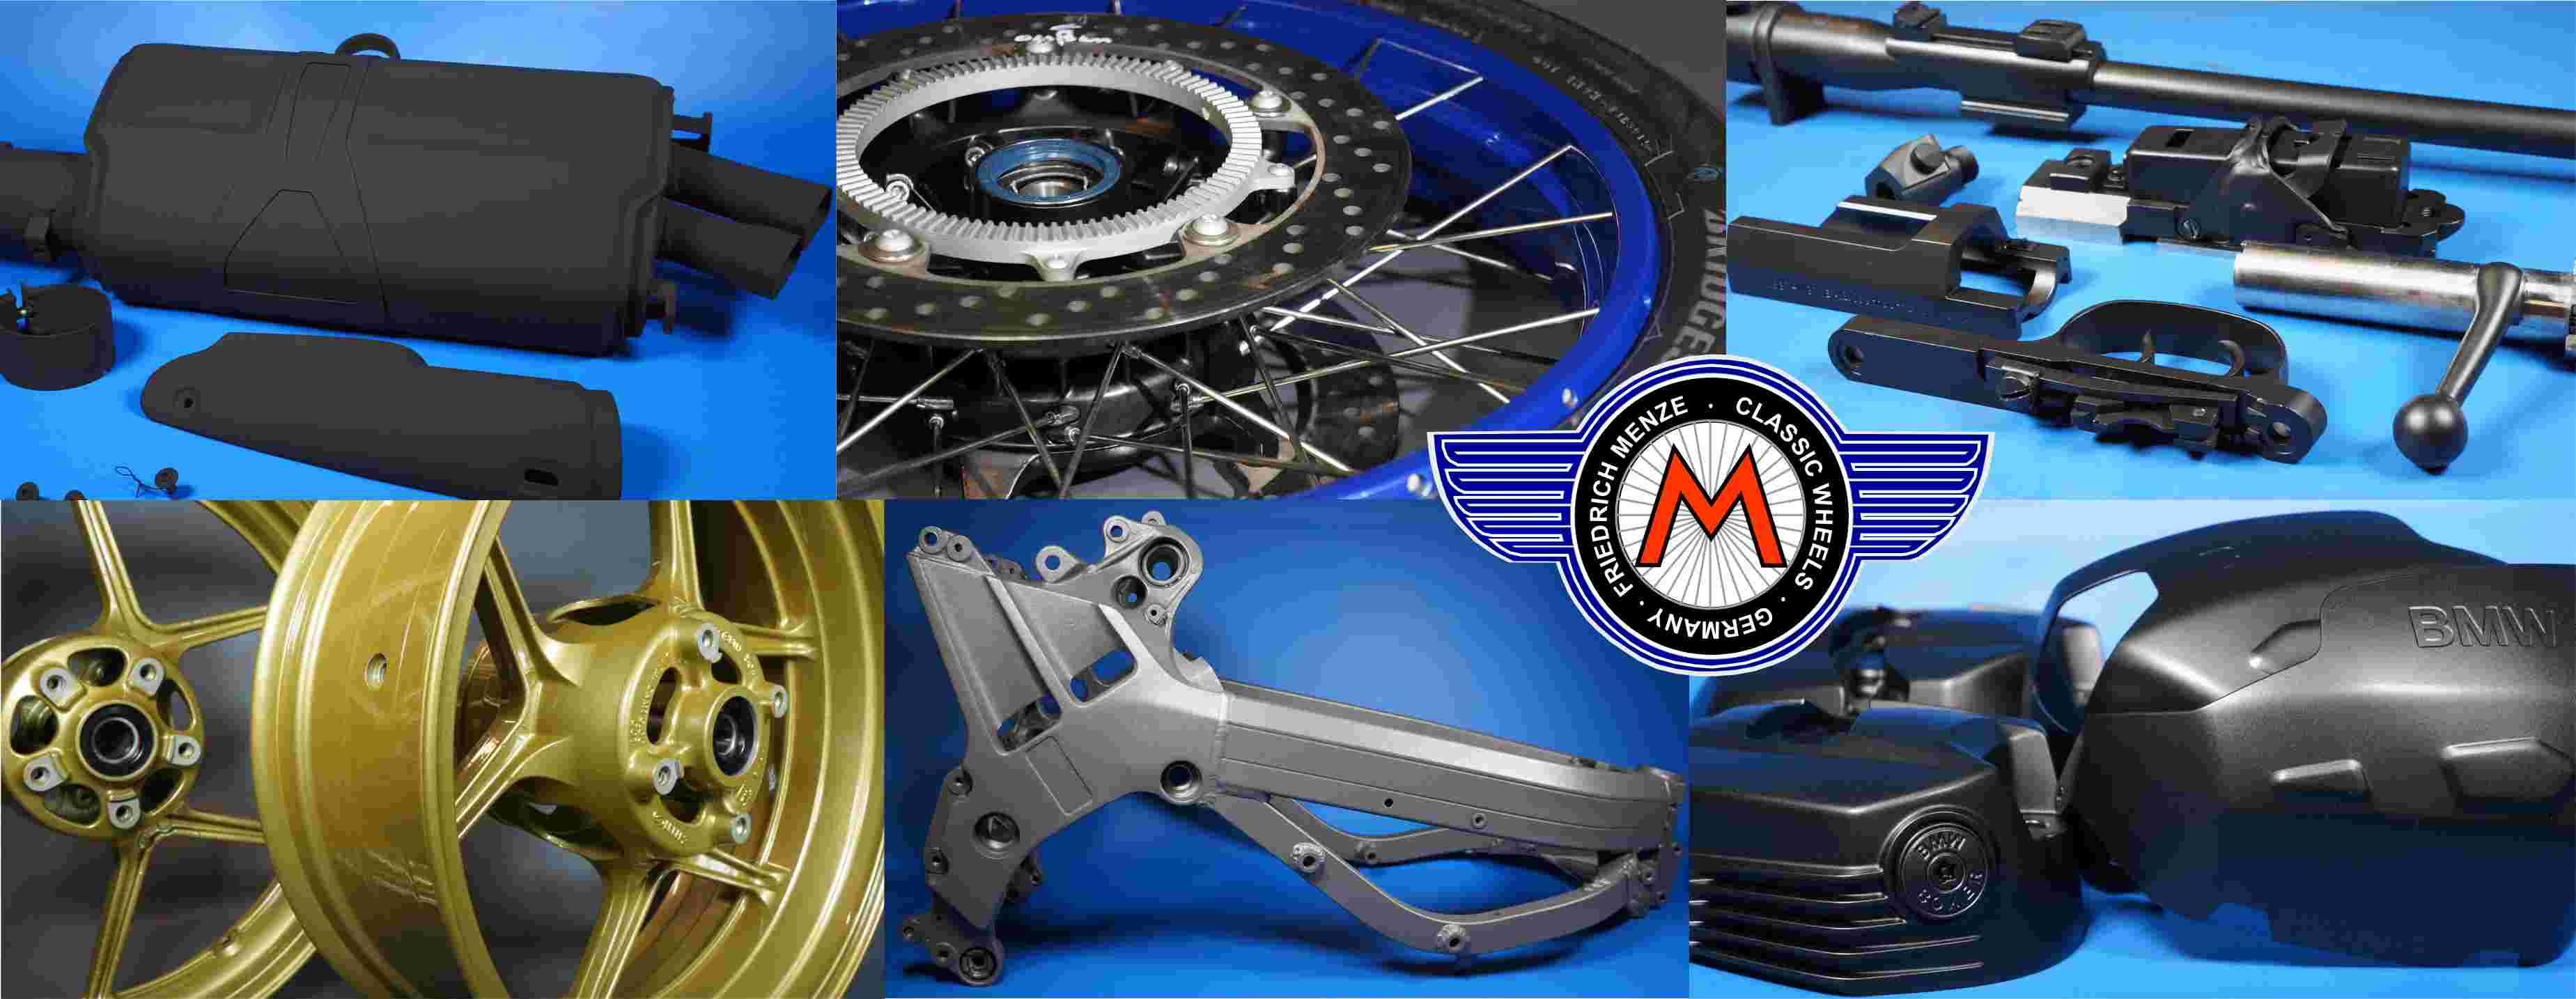 Motorcycle wheelbuilding and restorations